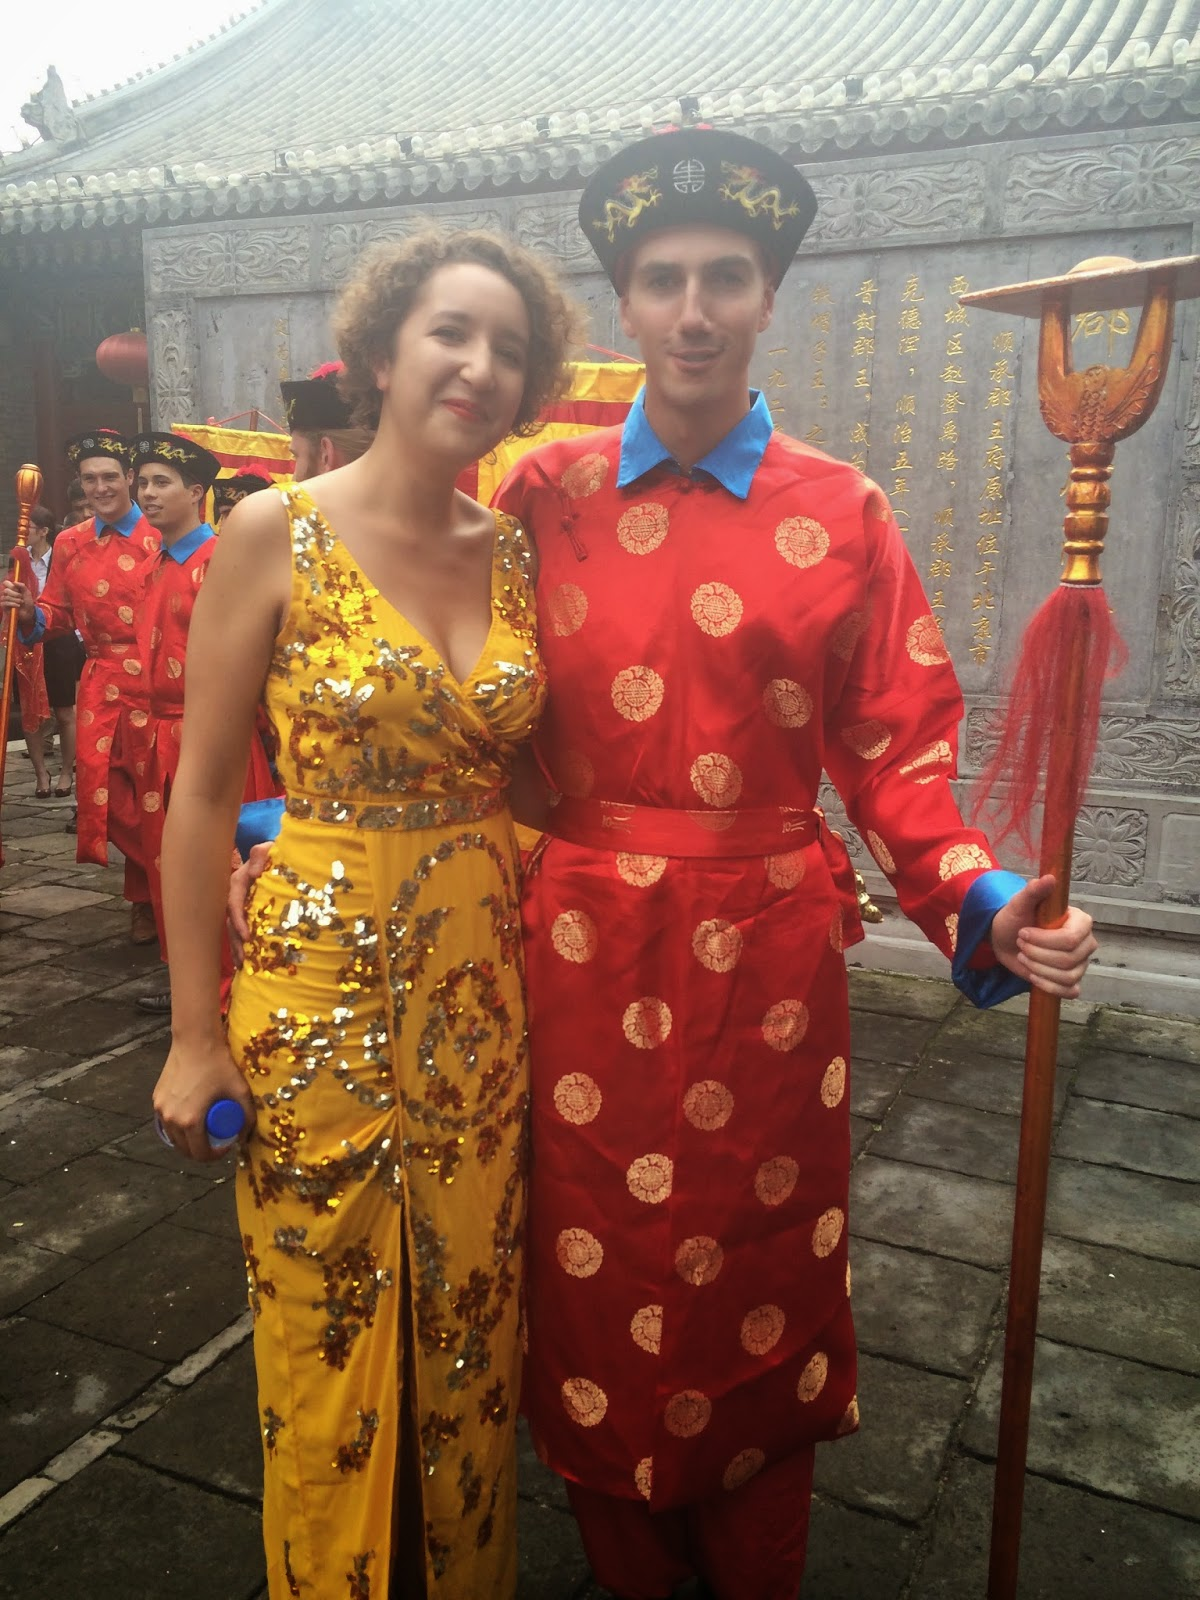 Chinese naked picture wedding